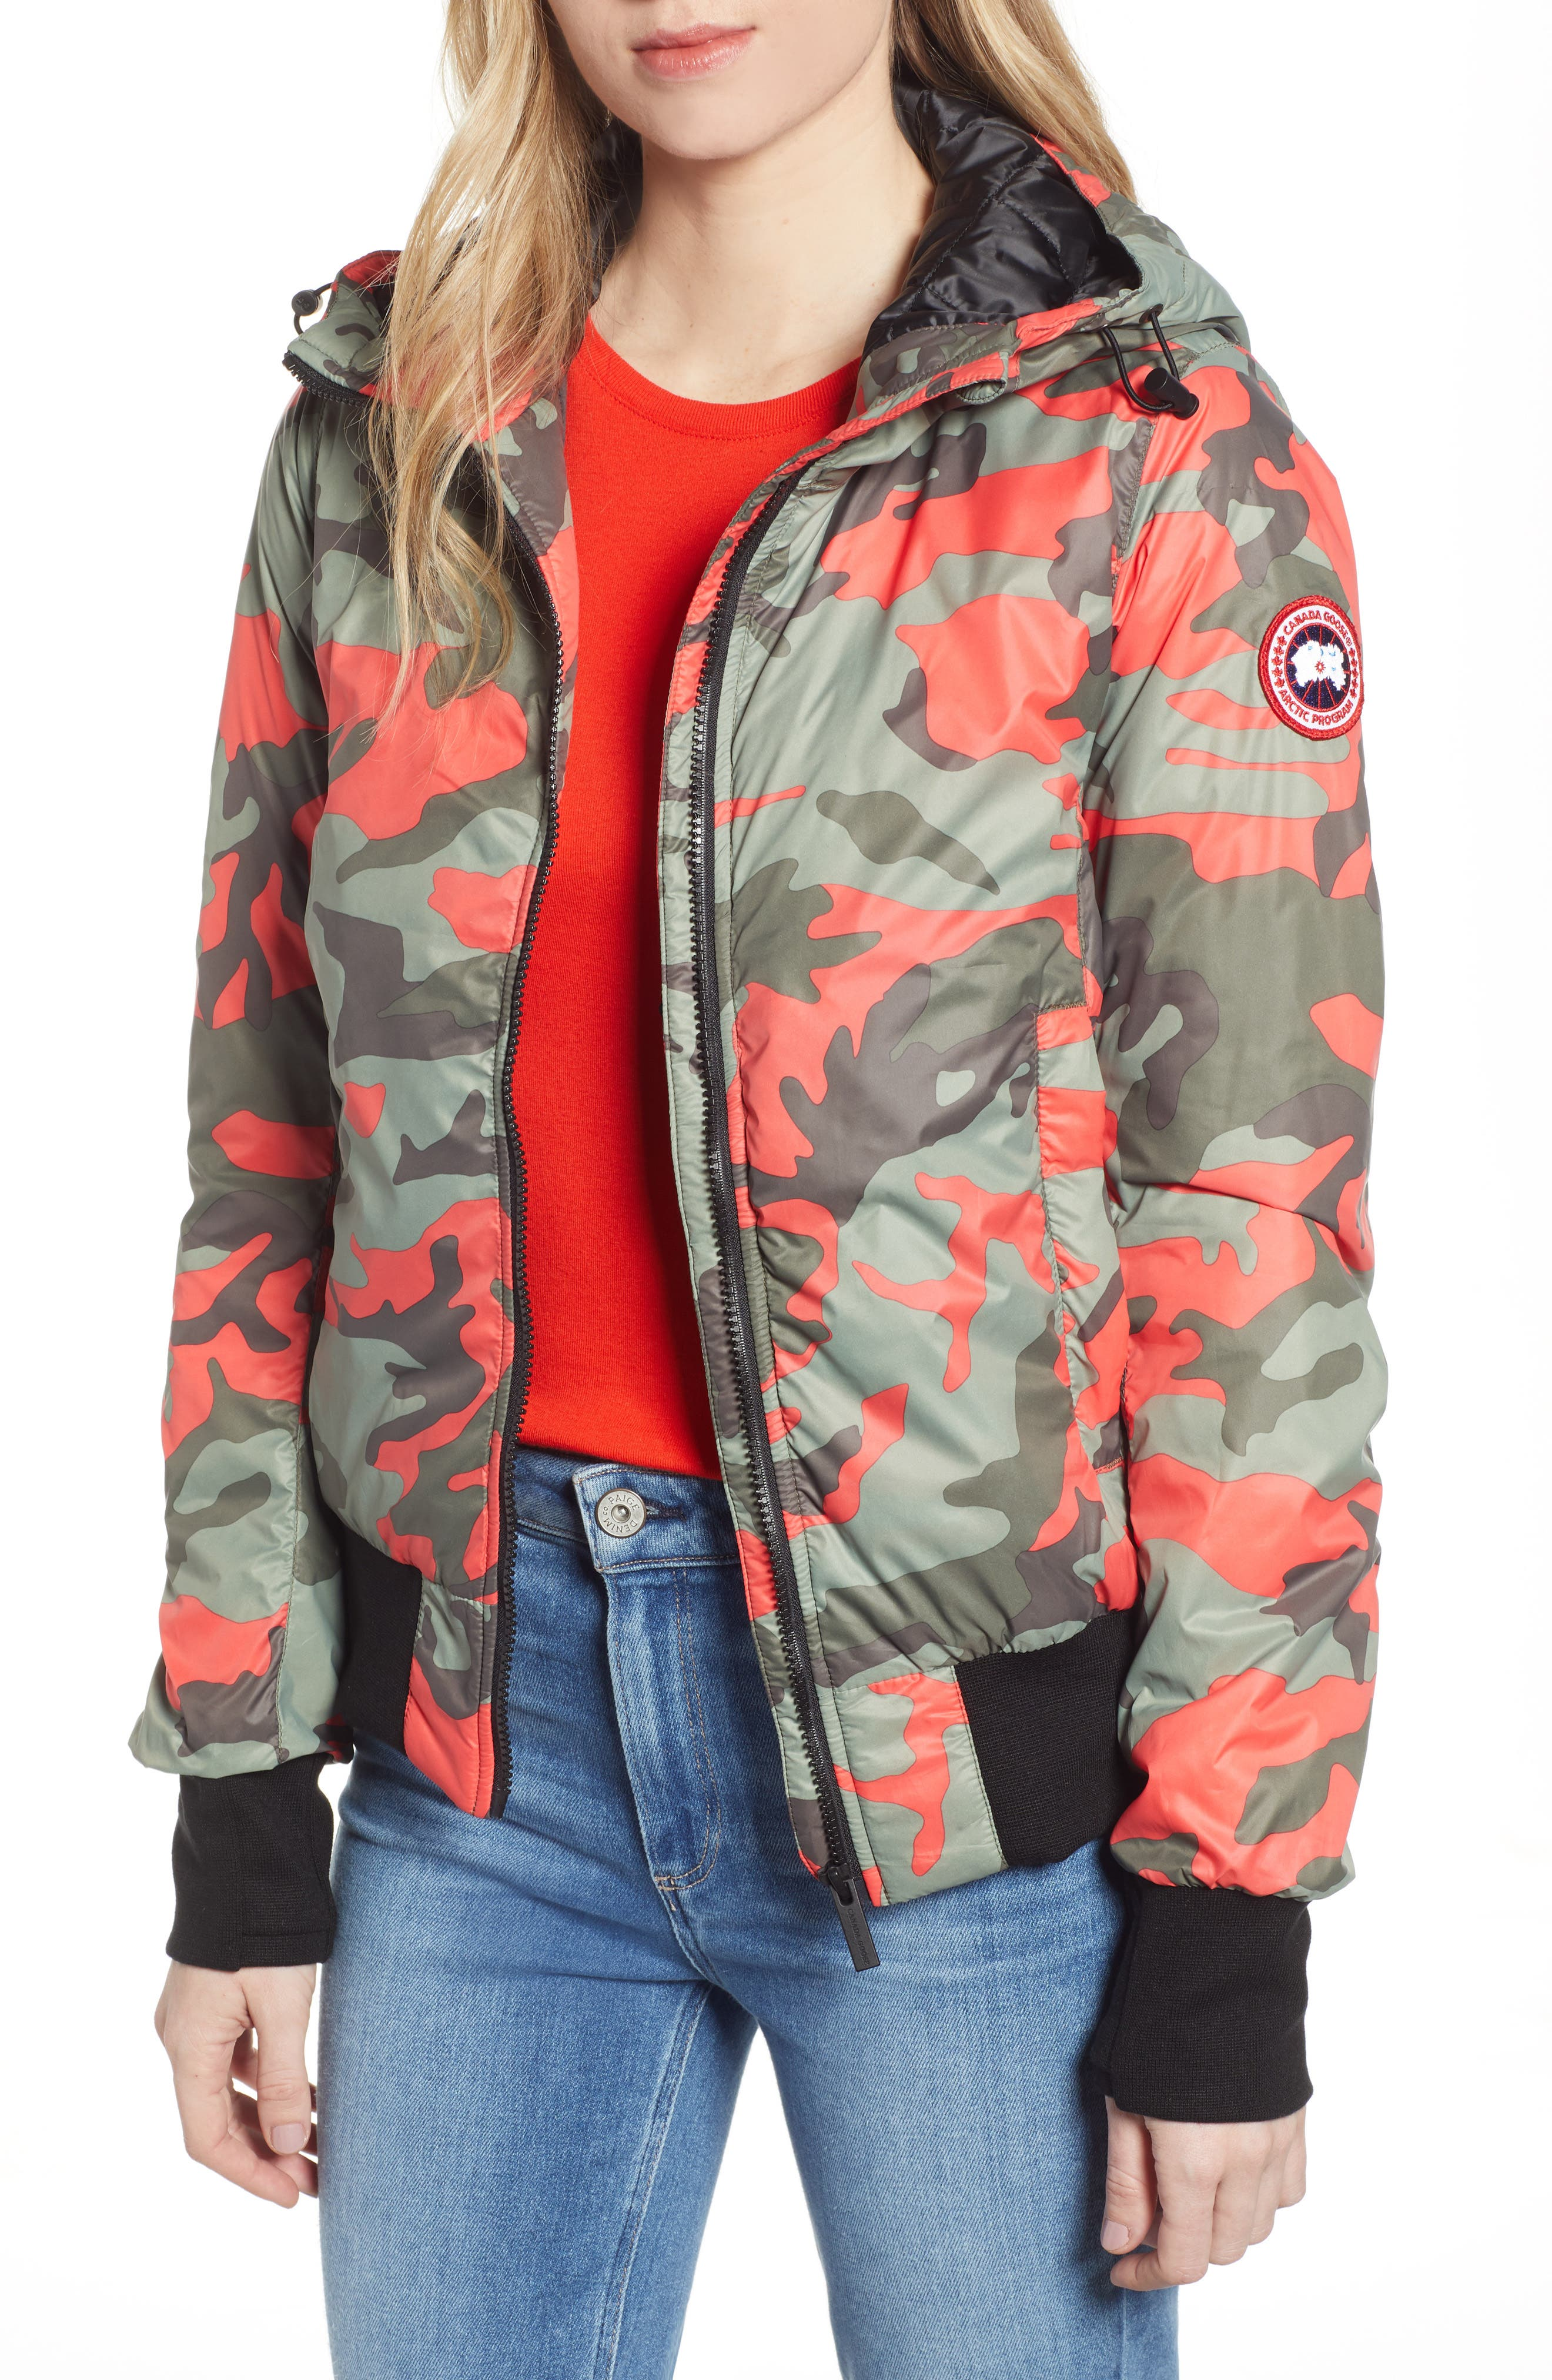 Canada Goose Dore Goose Down Hooded Jacket, (6-8) - Green